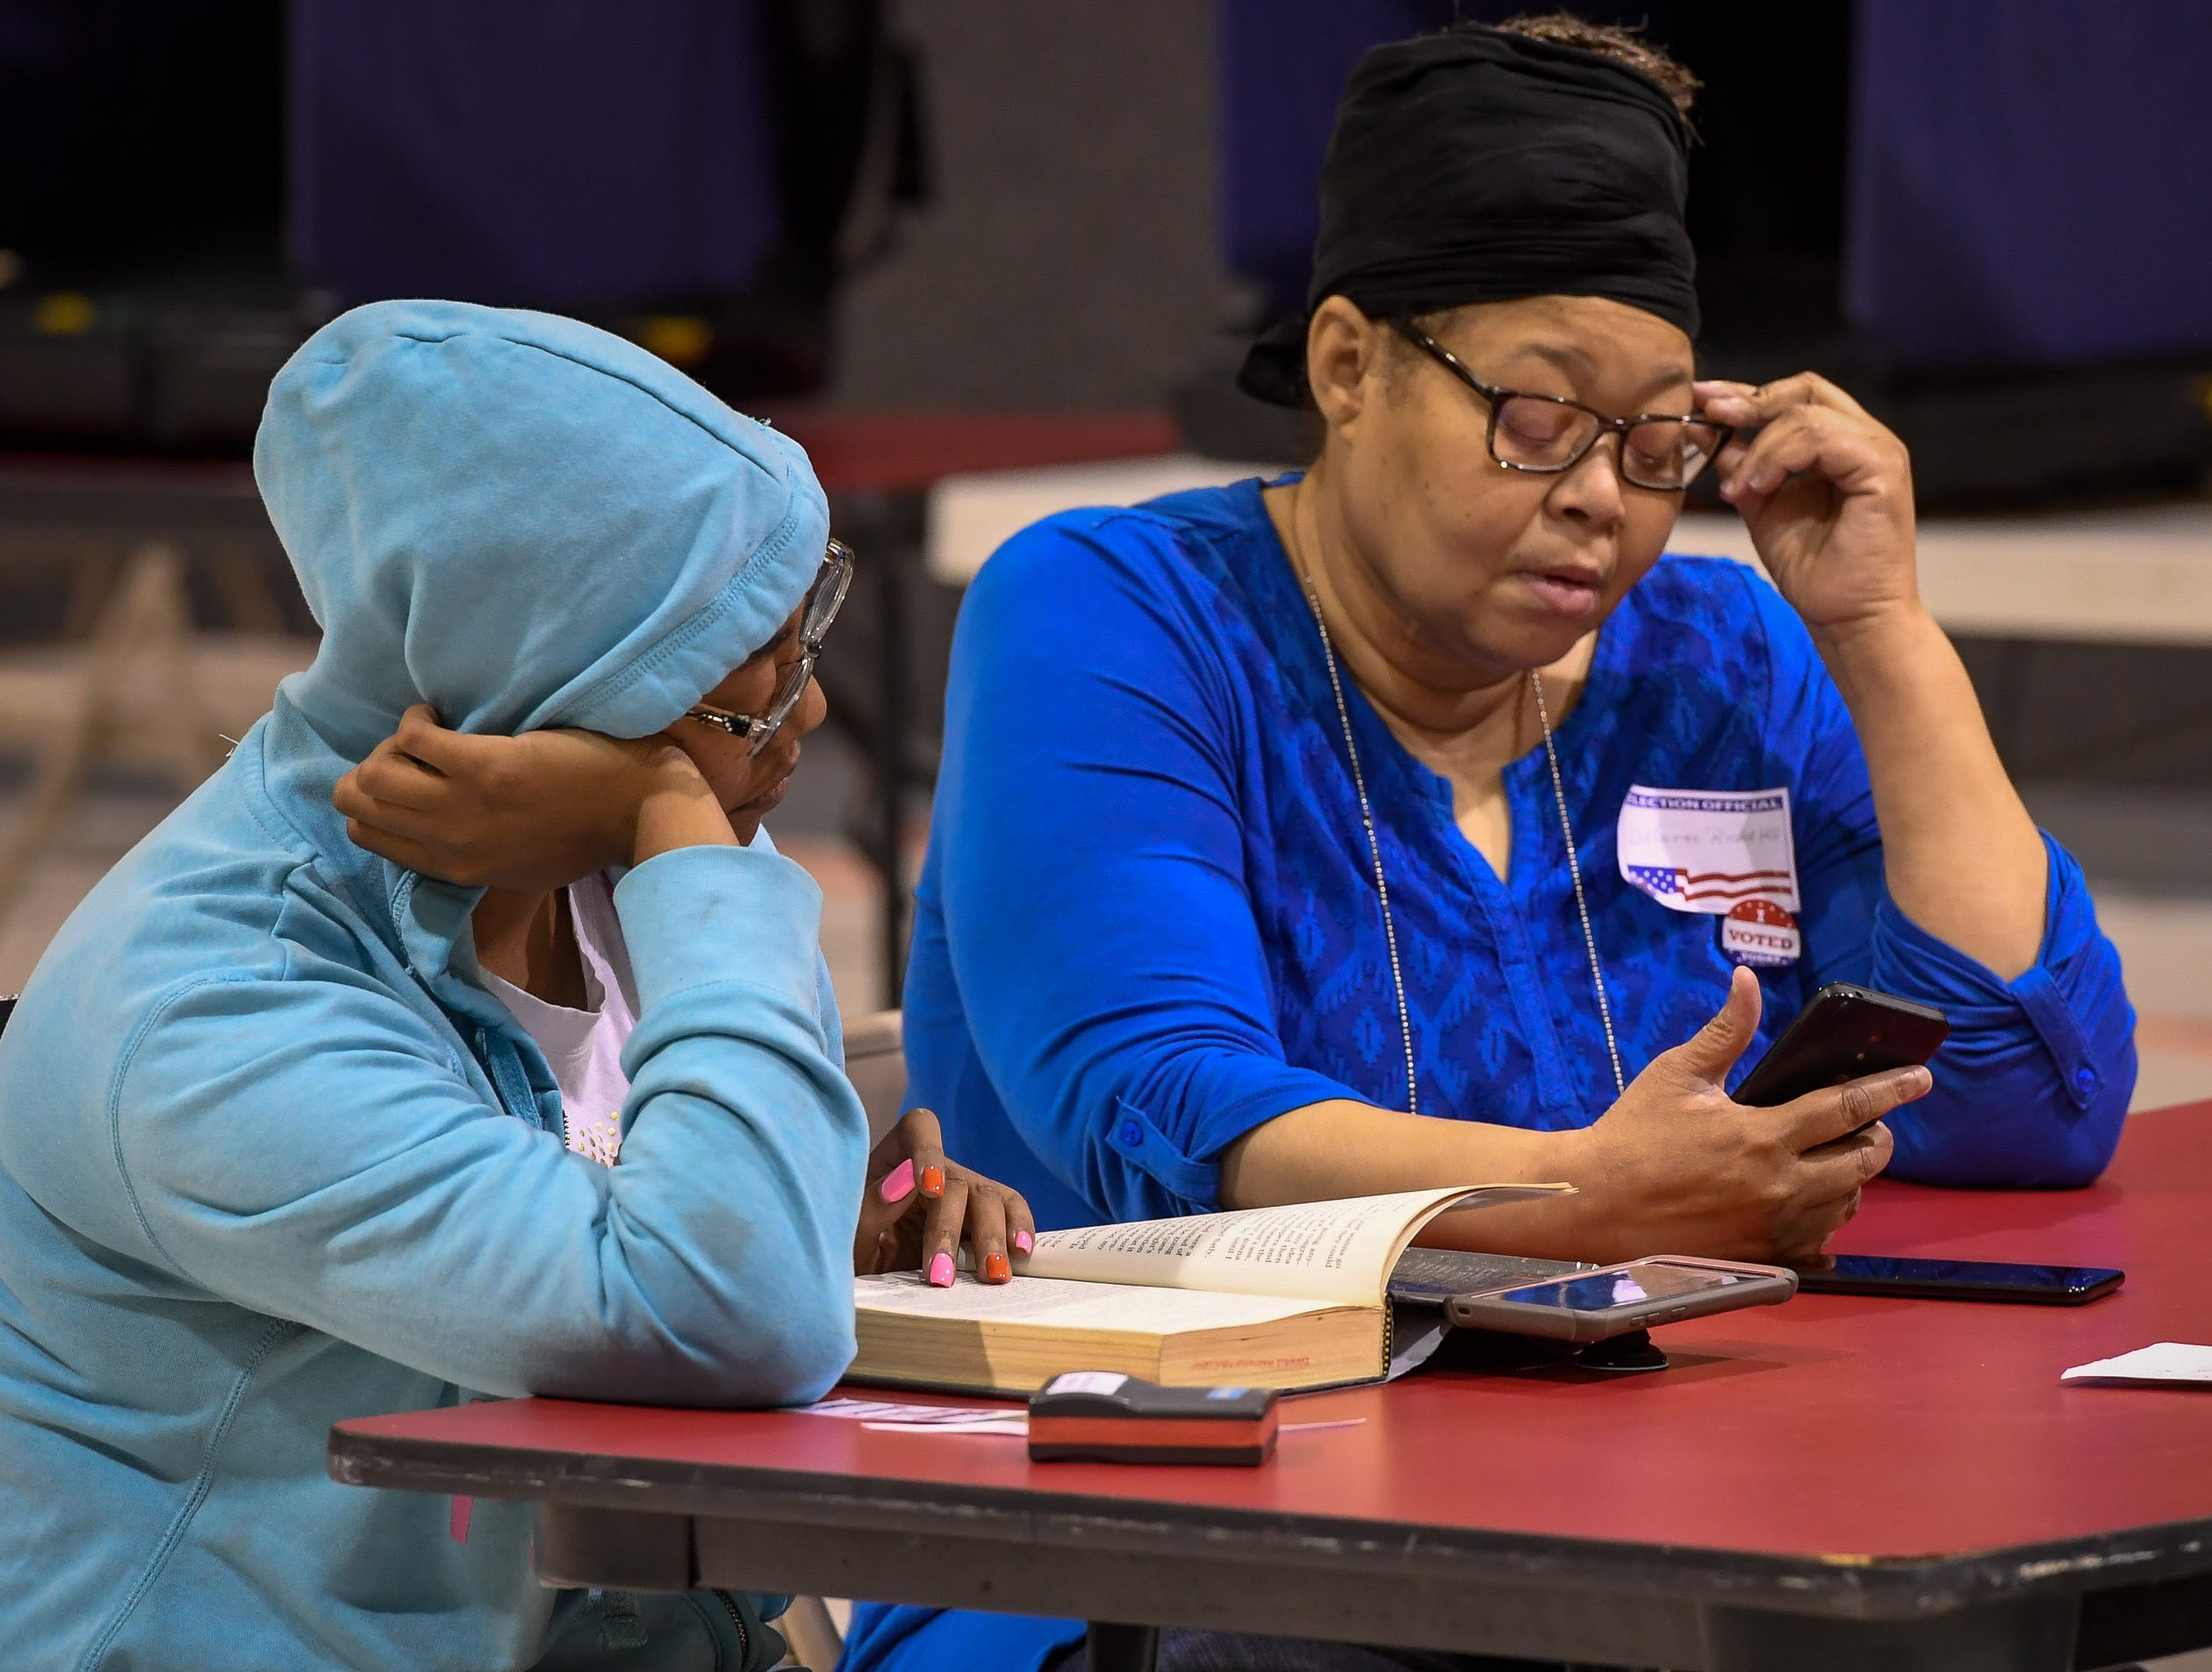 Election judges Tasha Ricketts, left, and her auntie Delores Ricketts pass the time waiting for voters at the Memorial Baptist Church voter center Tuesday, May 7, 2019.